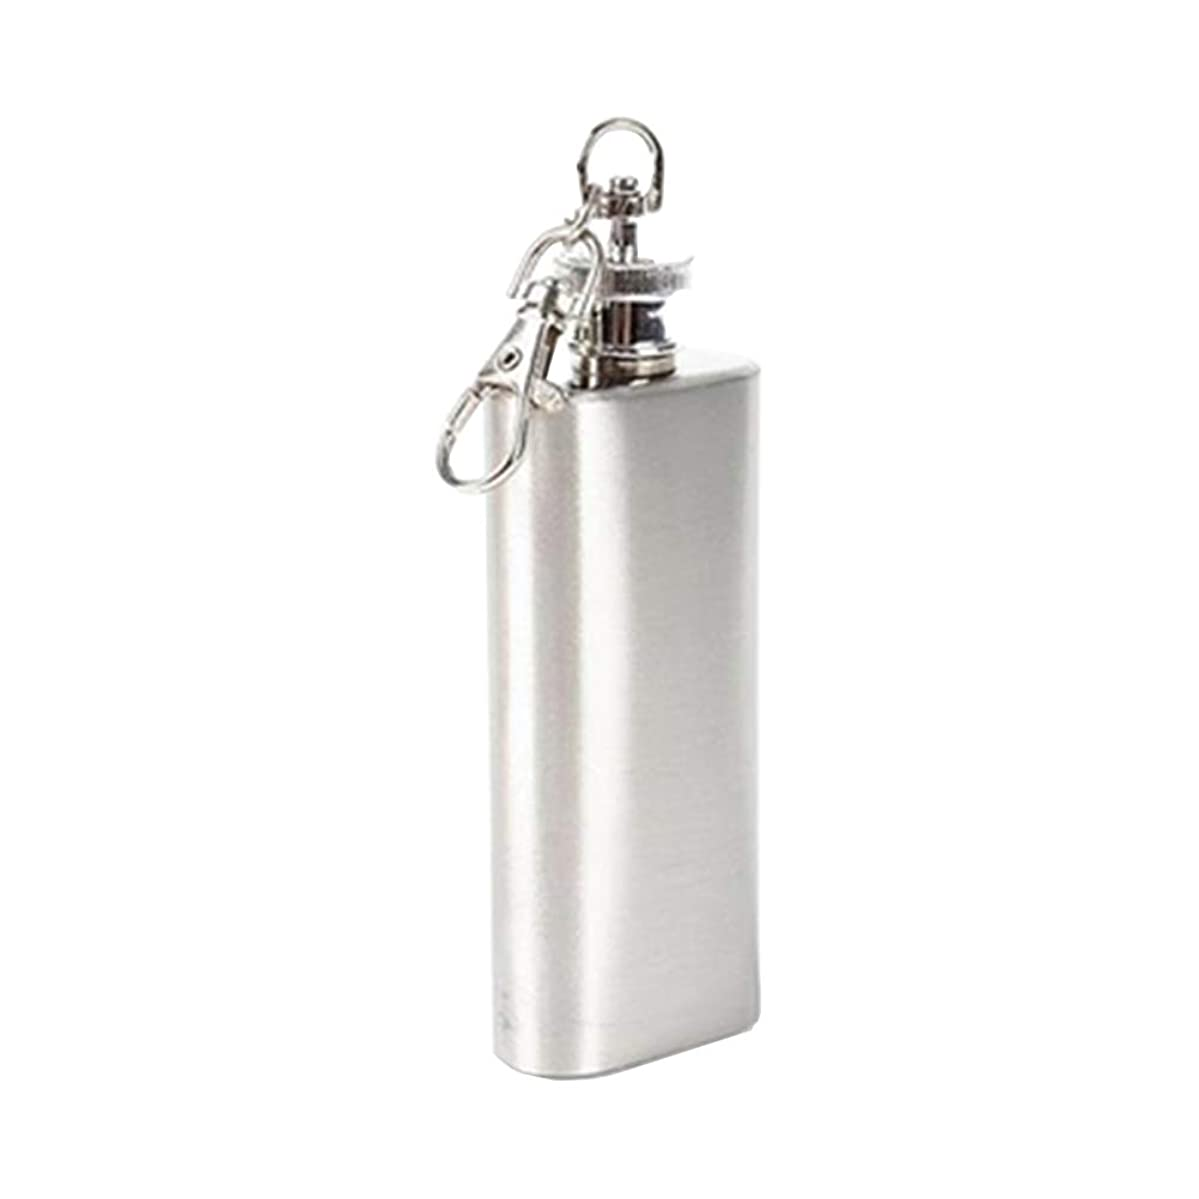 BESTONZON 3 Oz 56ml Hip Flask with Carabiner Keychain Stainless Steel Pocket Flask for Liquor (Silver)